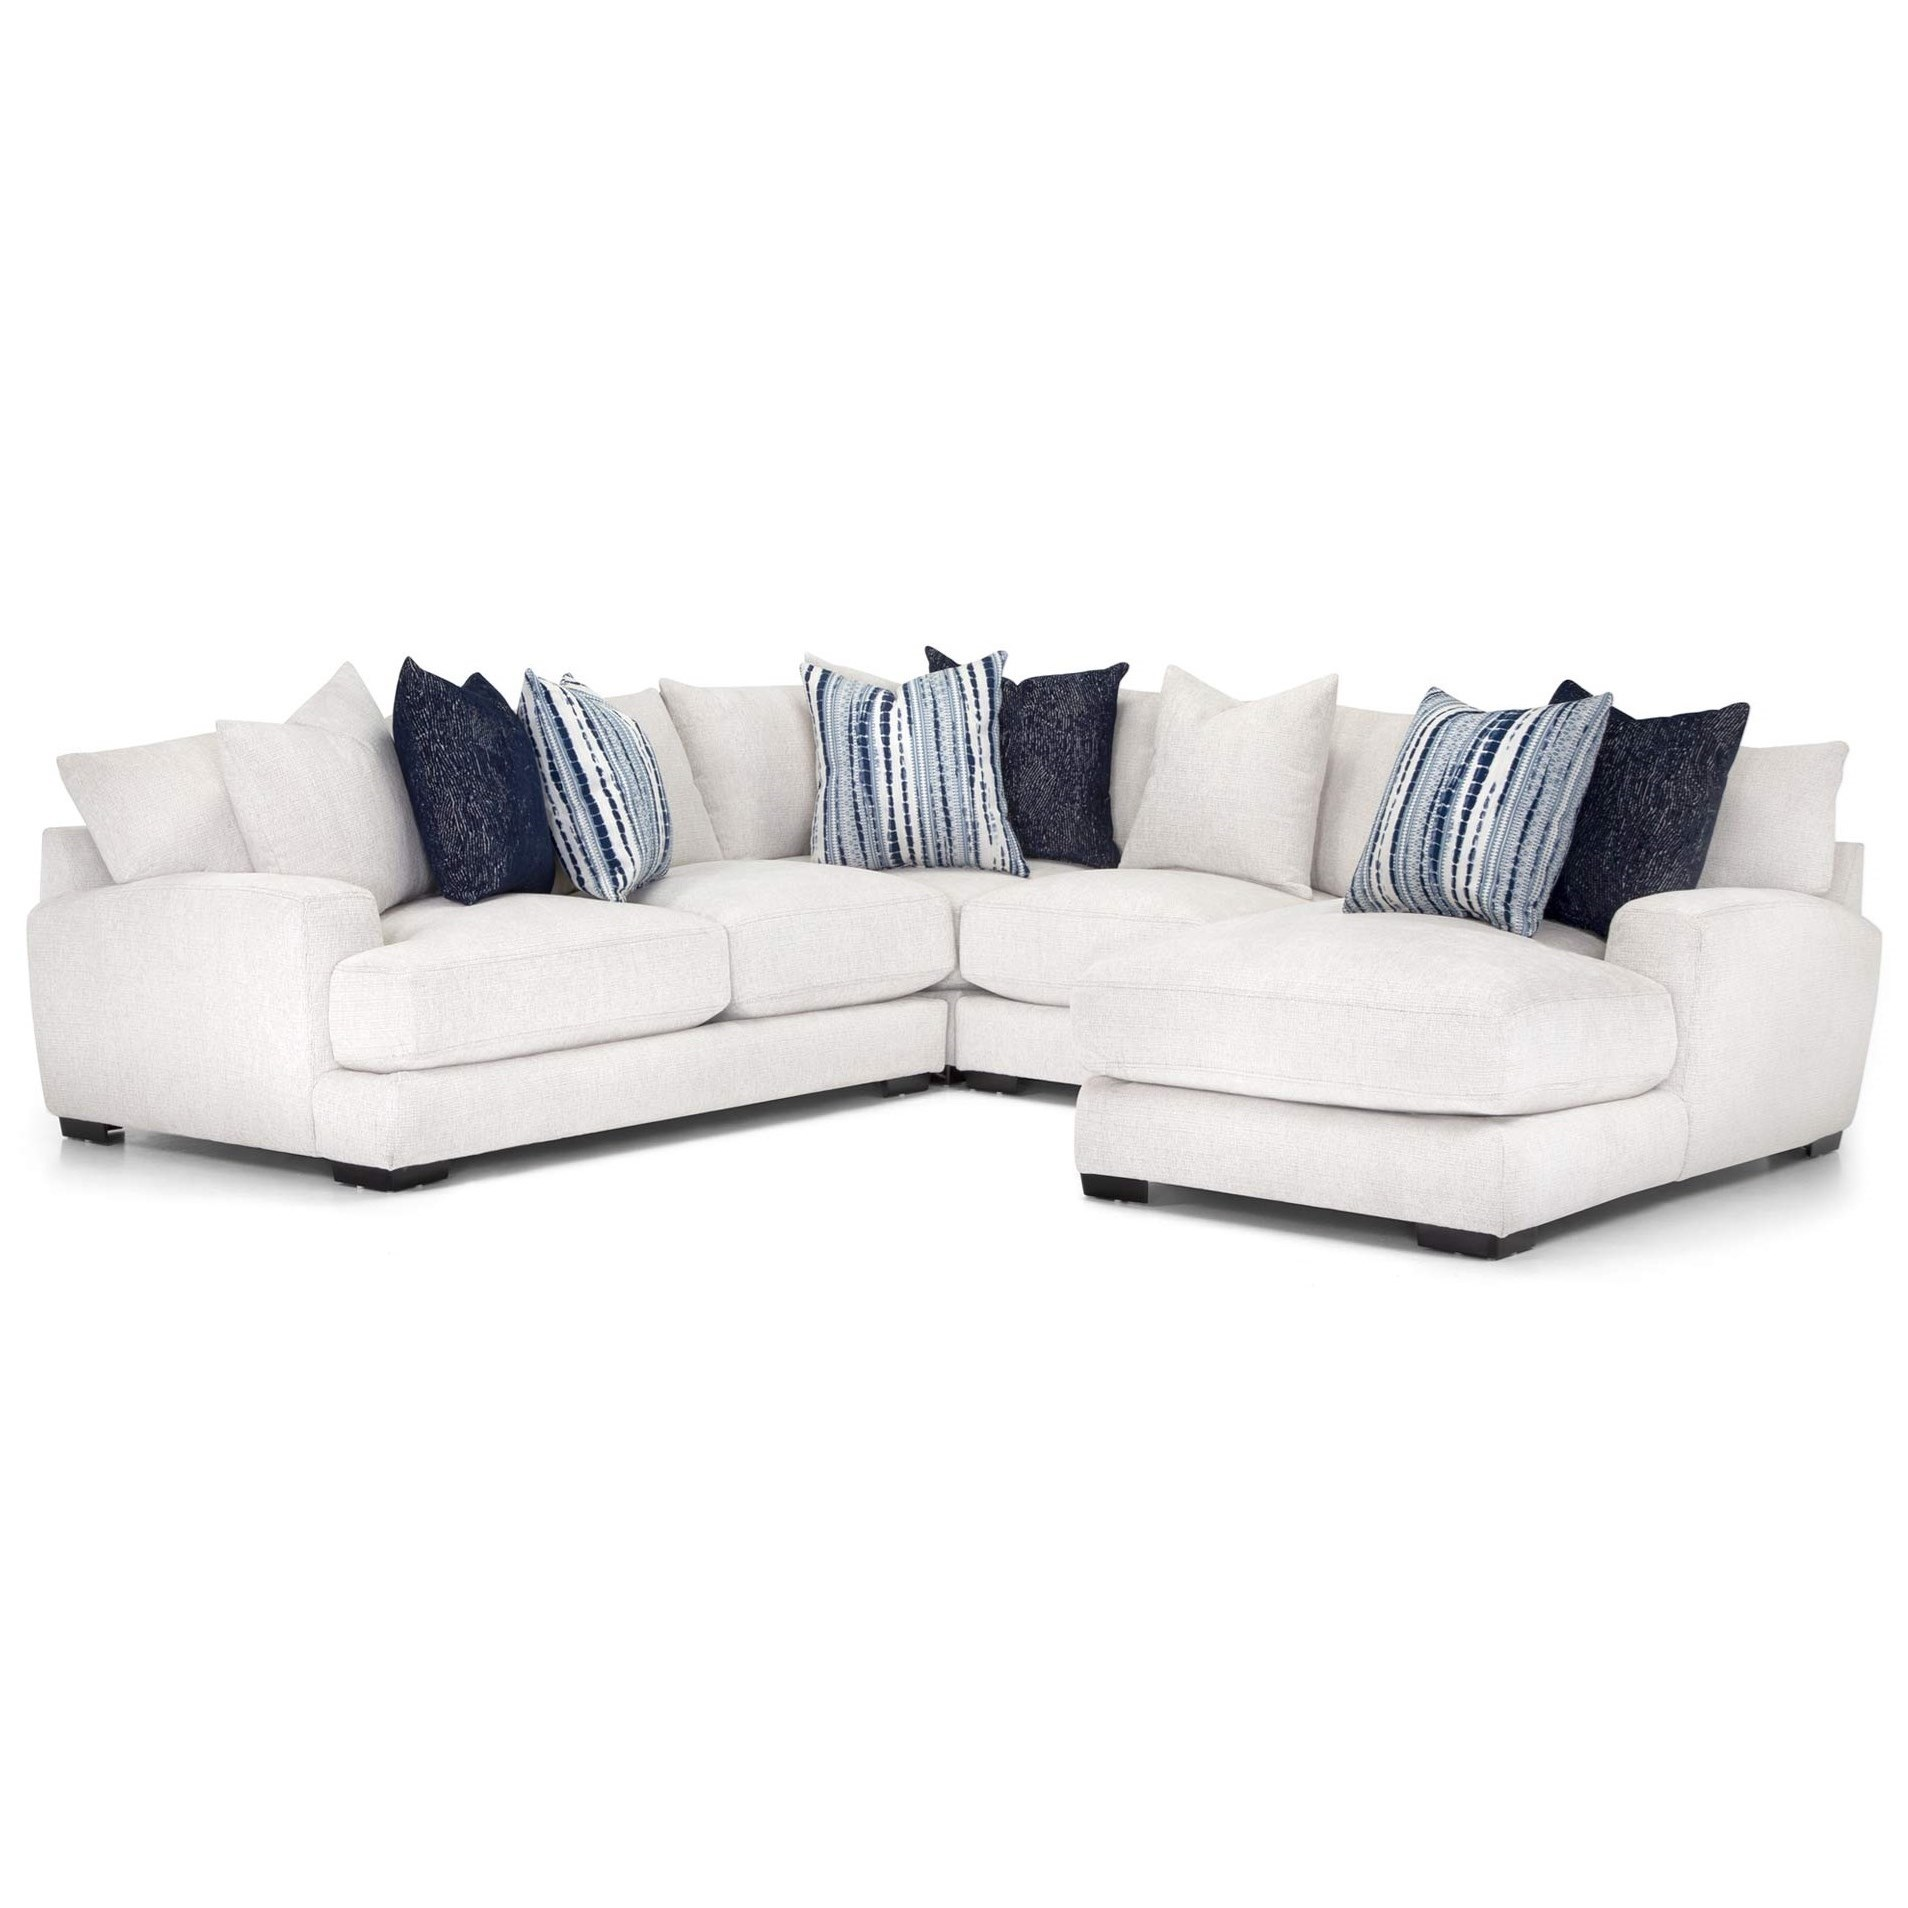 903 Sectional Sofa by Franklin at Wilcox Furniture